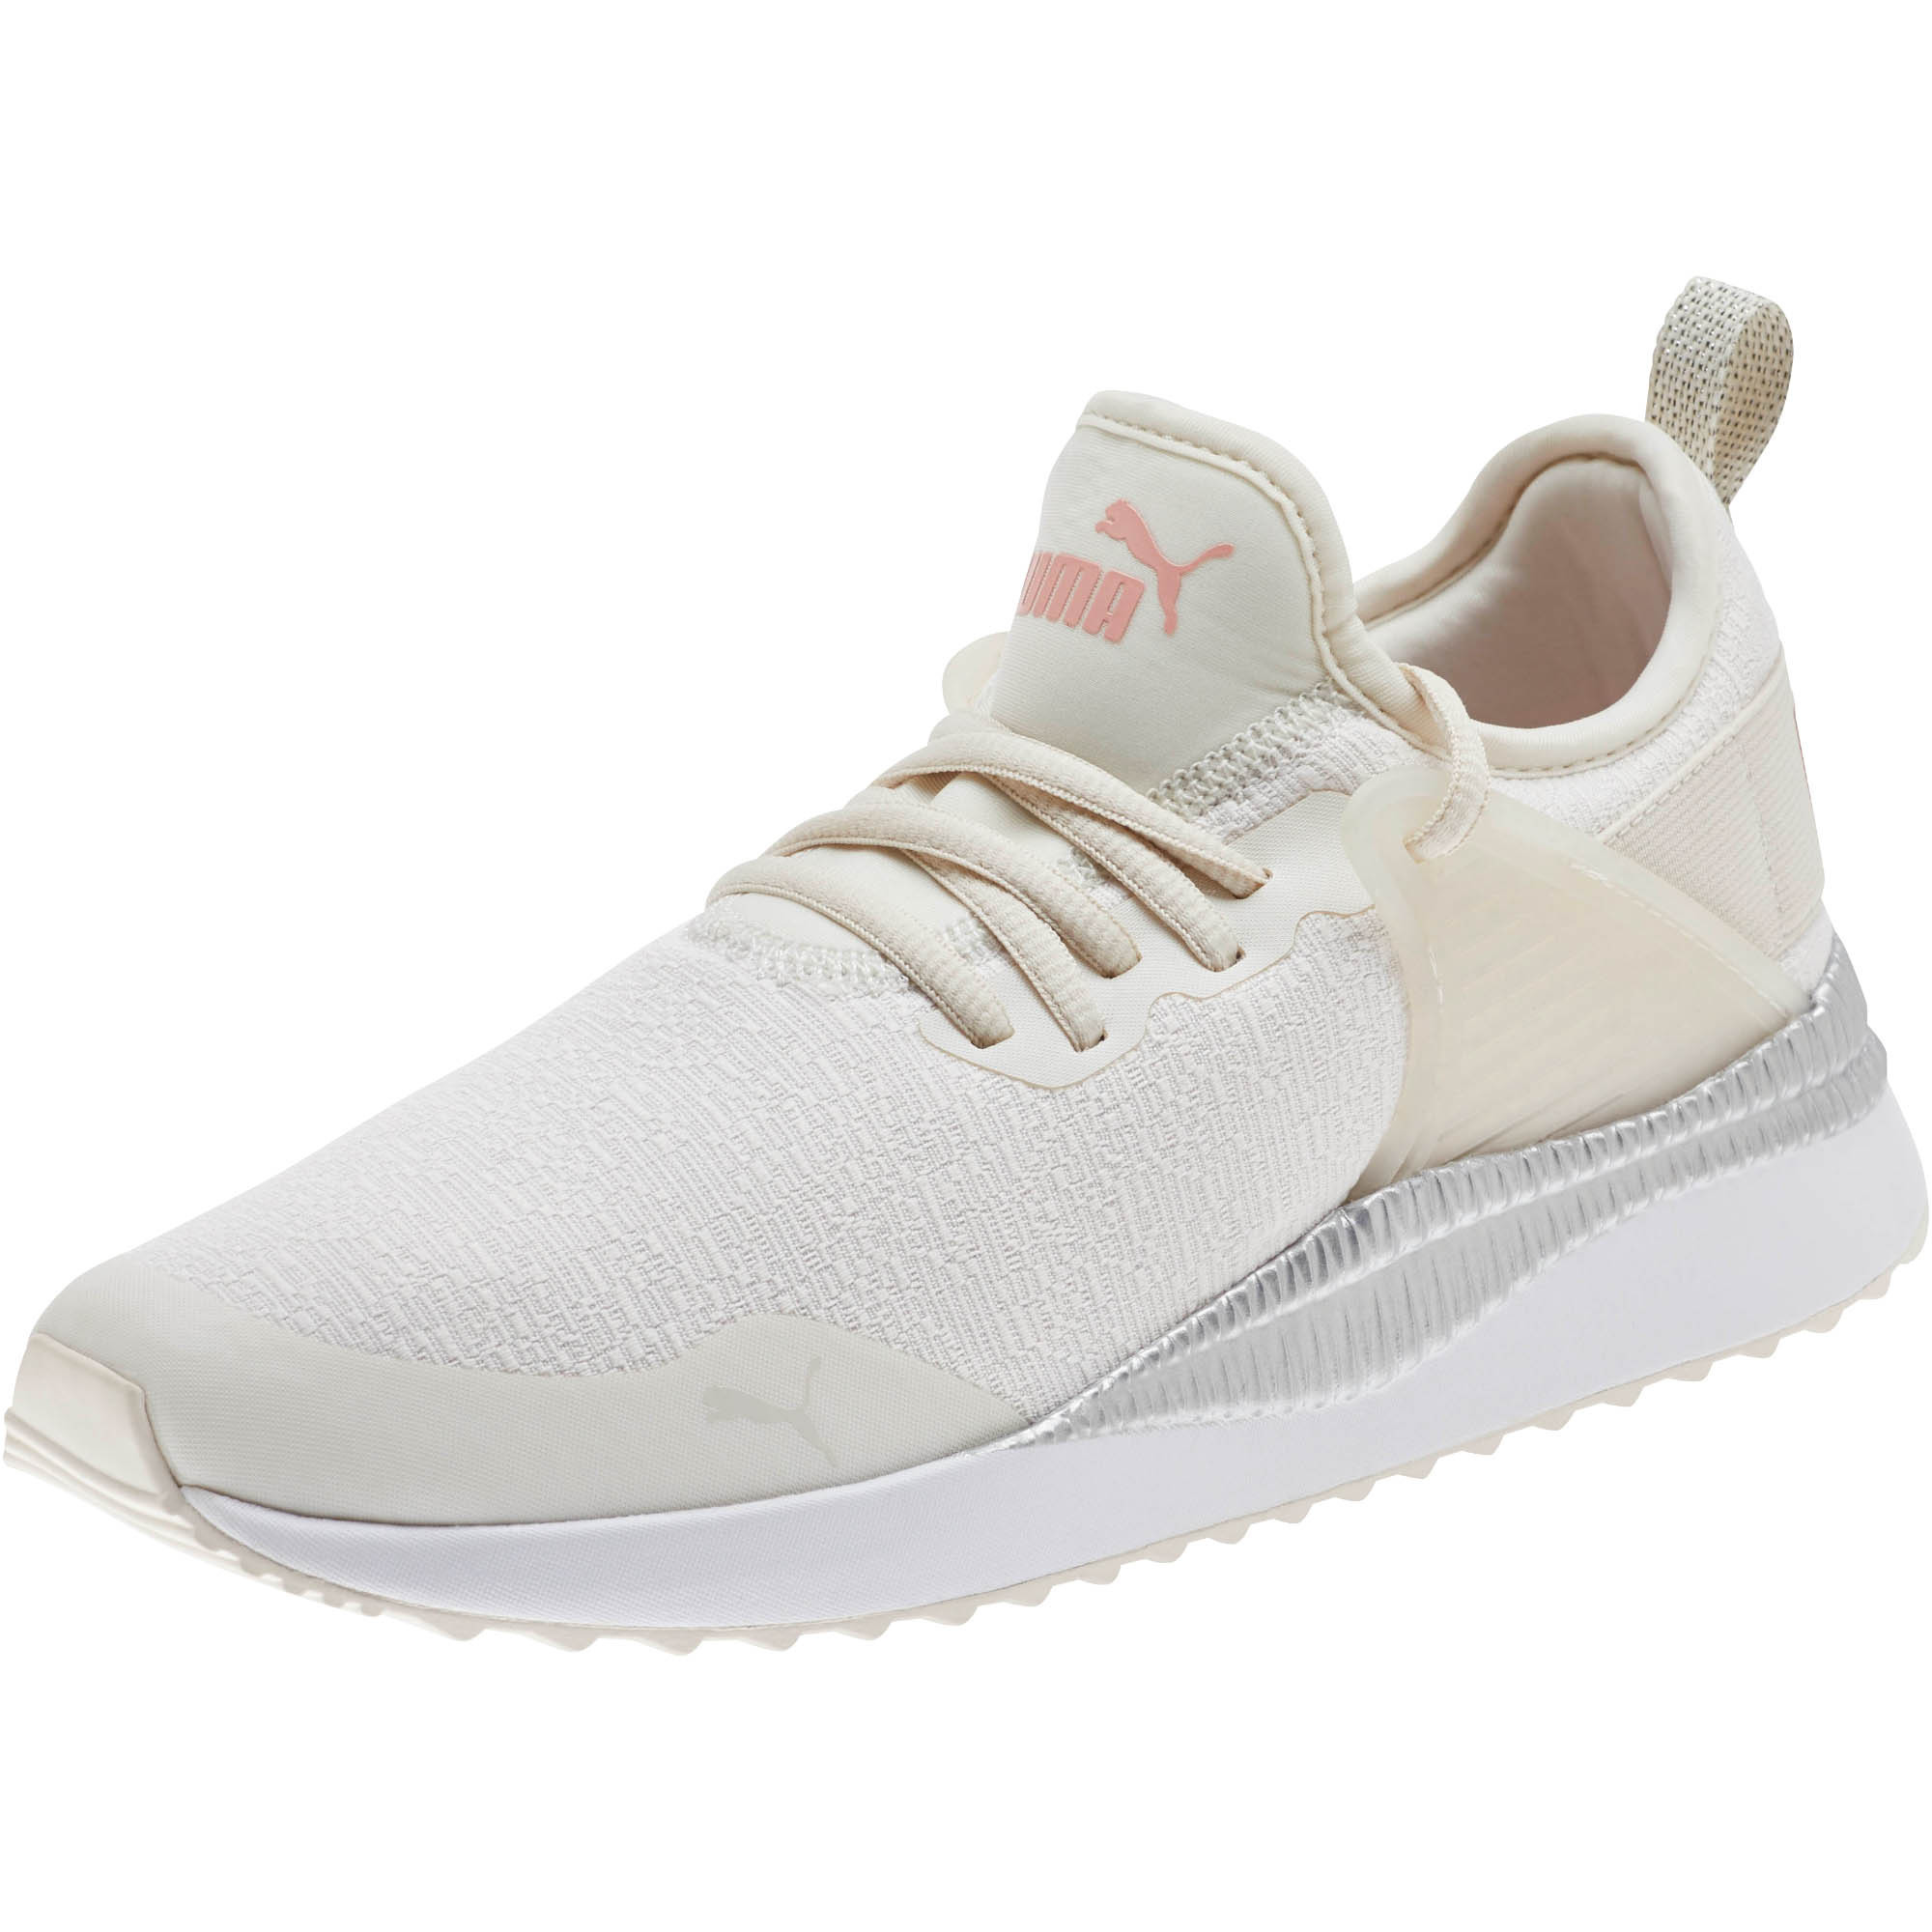 PUMA-Pacer-Next-Cage-Glitter-Women-039-s-Sneakers-Women-Shoe-Basics thumbnail 4